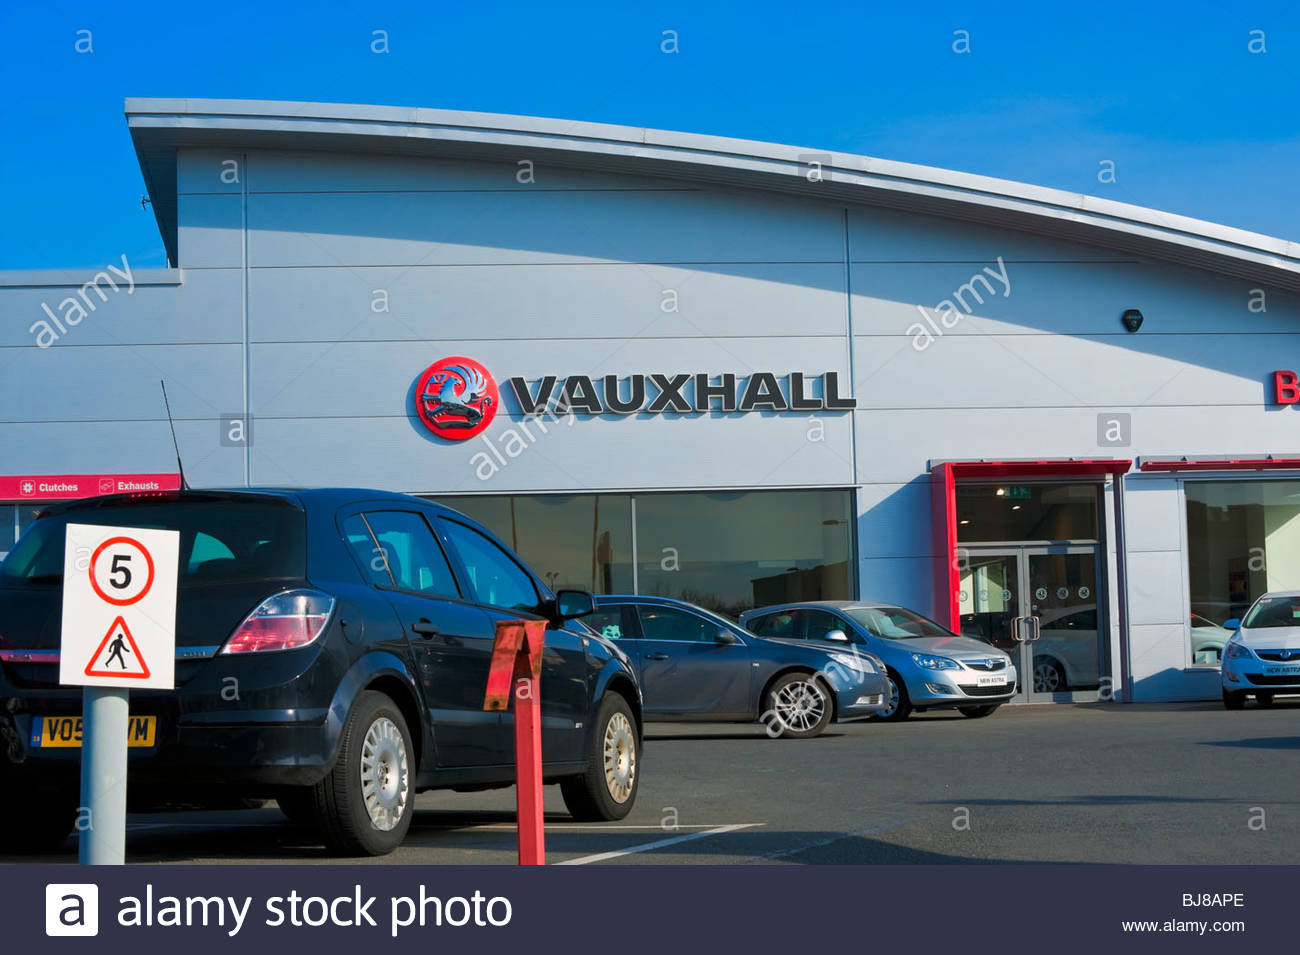 Vauxhall car showroom in Hereford, UK. Vauxhall car dealership Stock ...